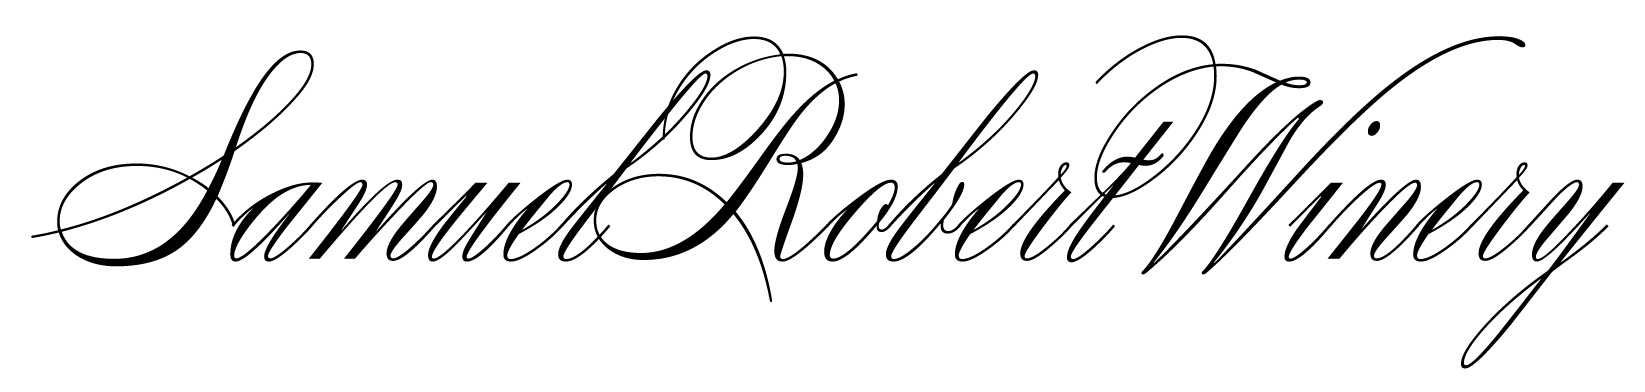 Samuel Robert Winery Script